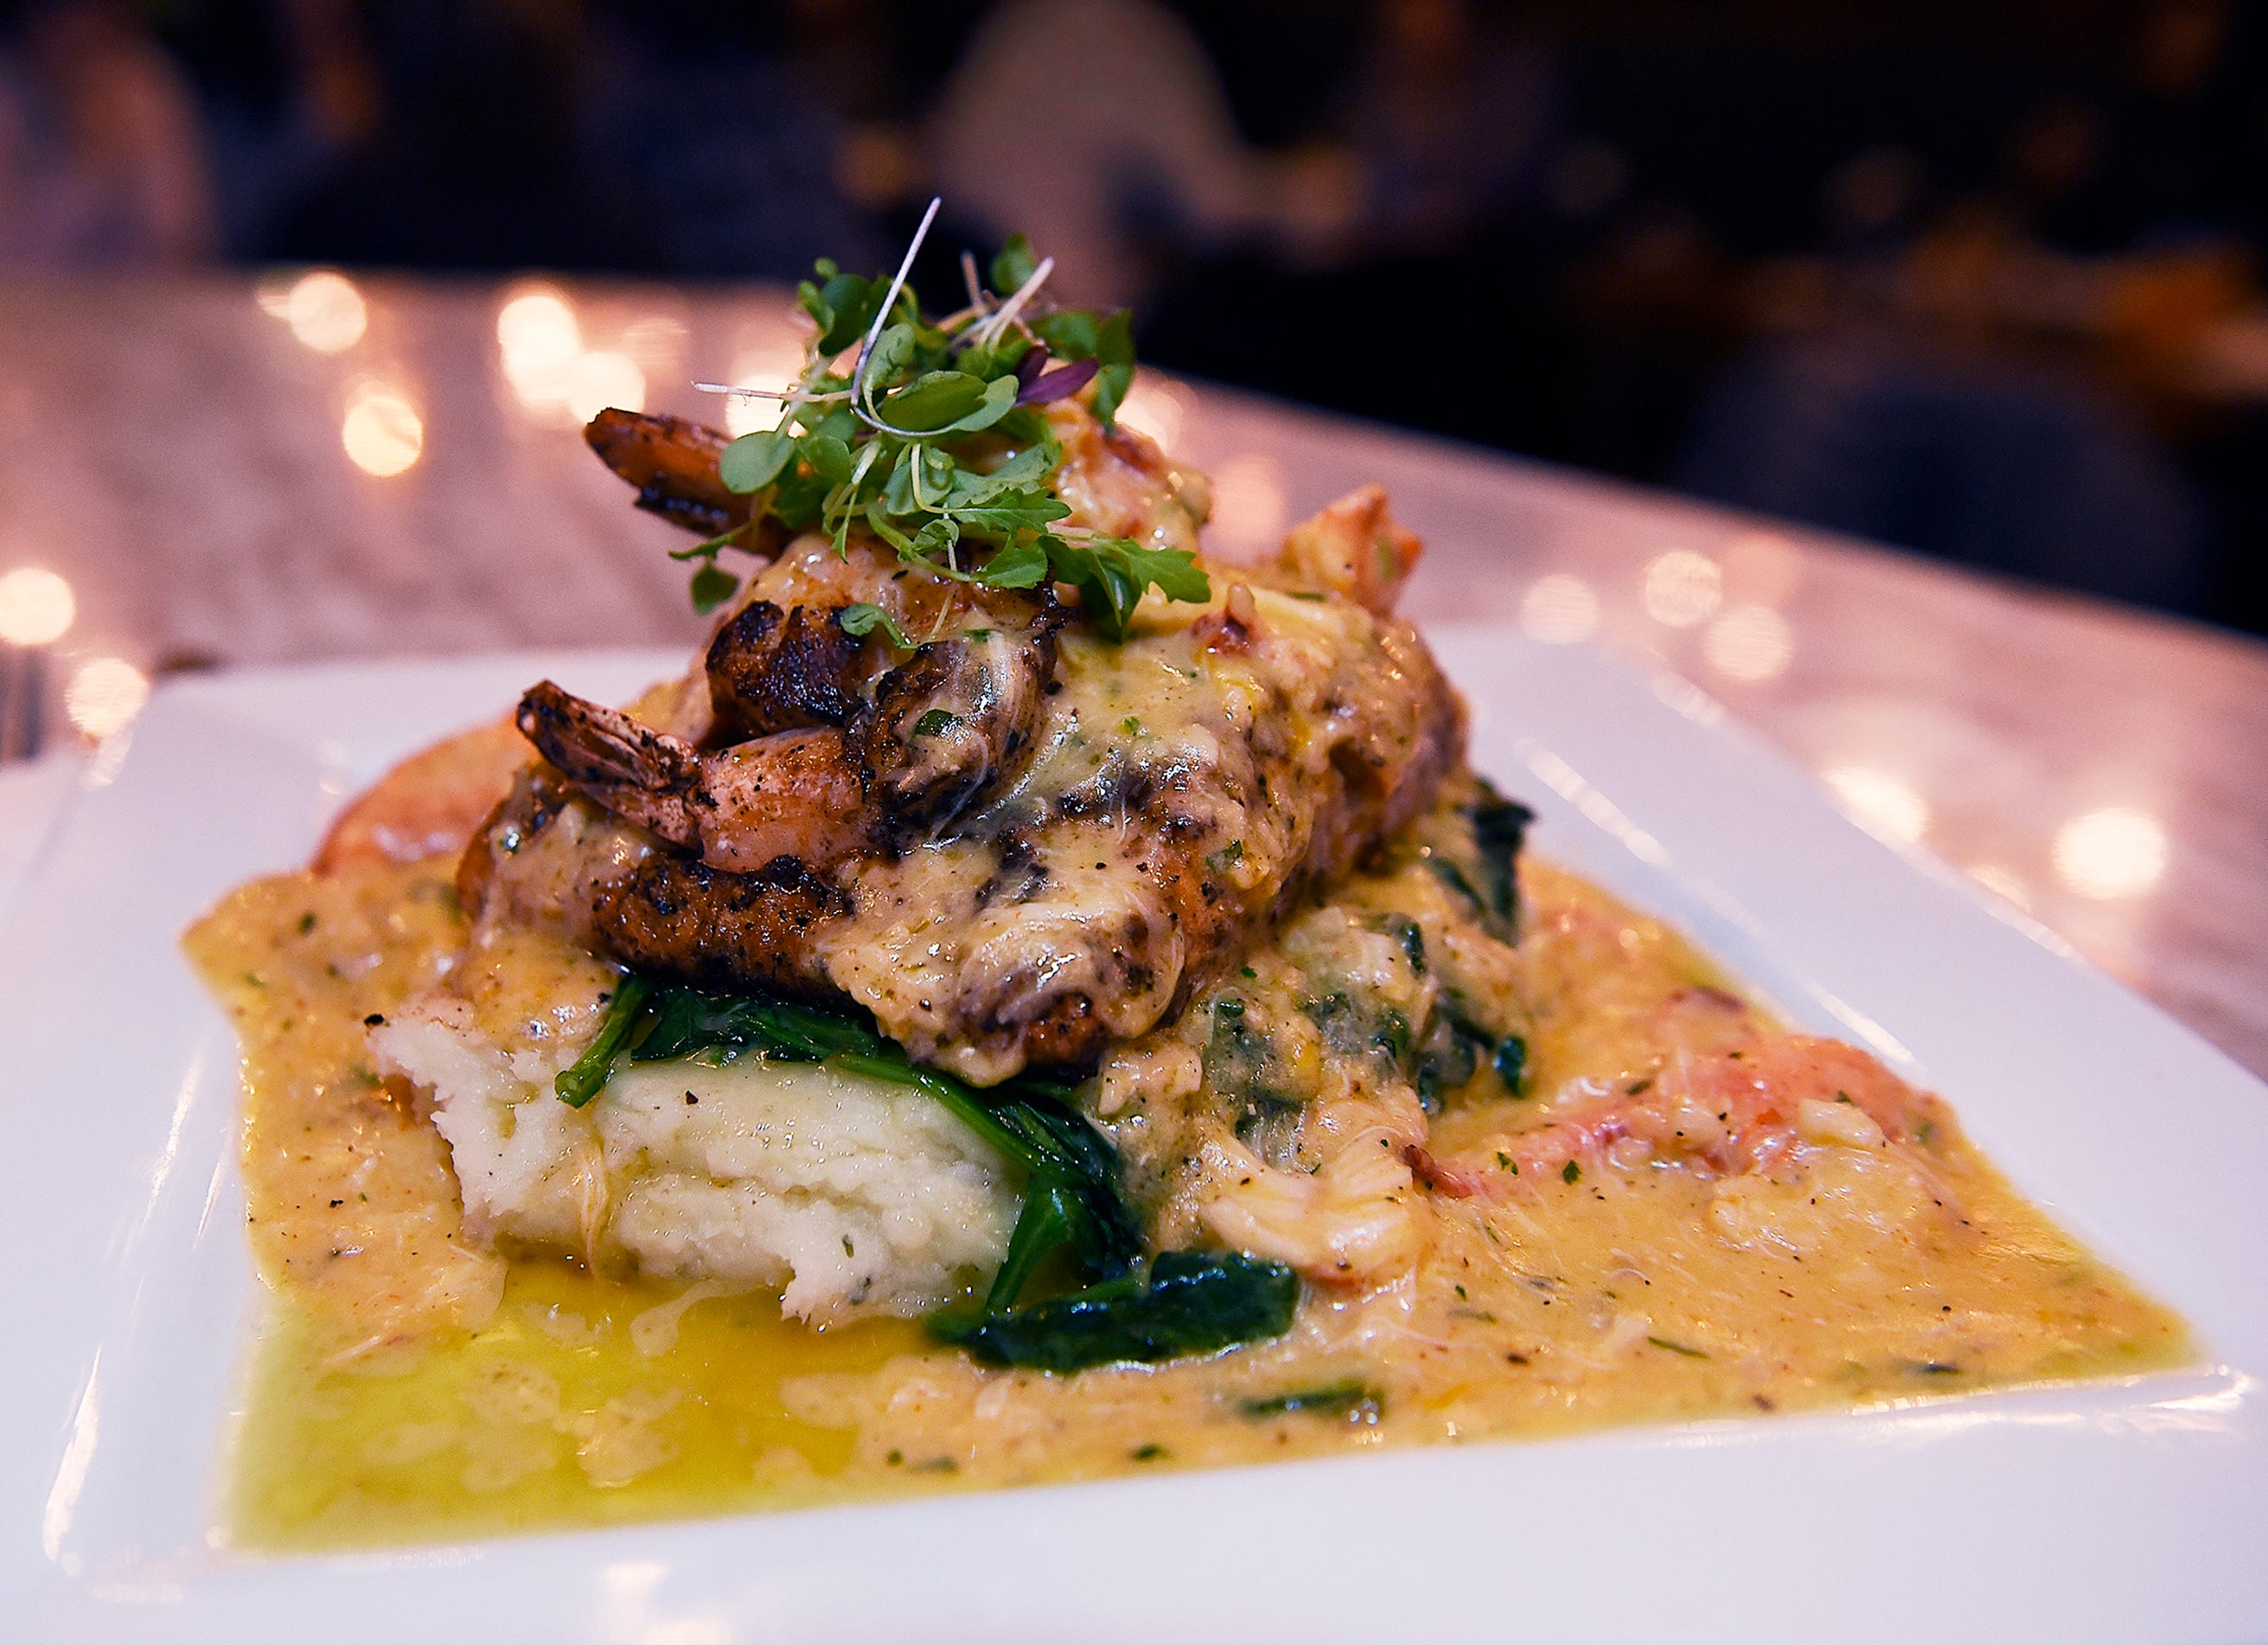 The $42 dollar Salmon Tower, (8oz organic alaskan salmon, topped with jumbo lump crab & lobster, whipped potatos, spinach with house sauce.